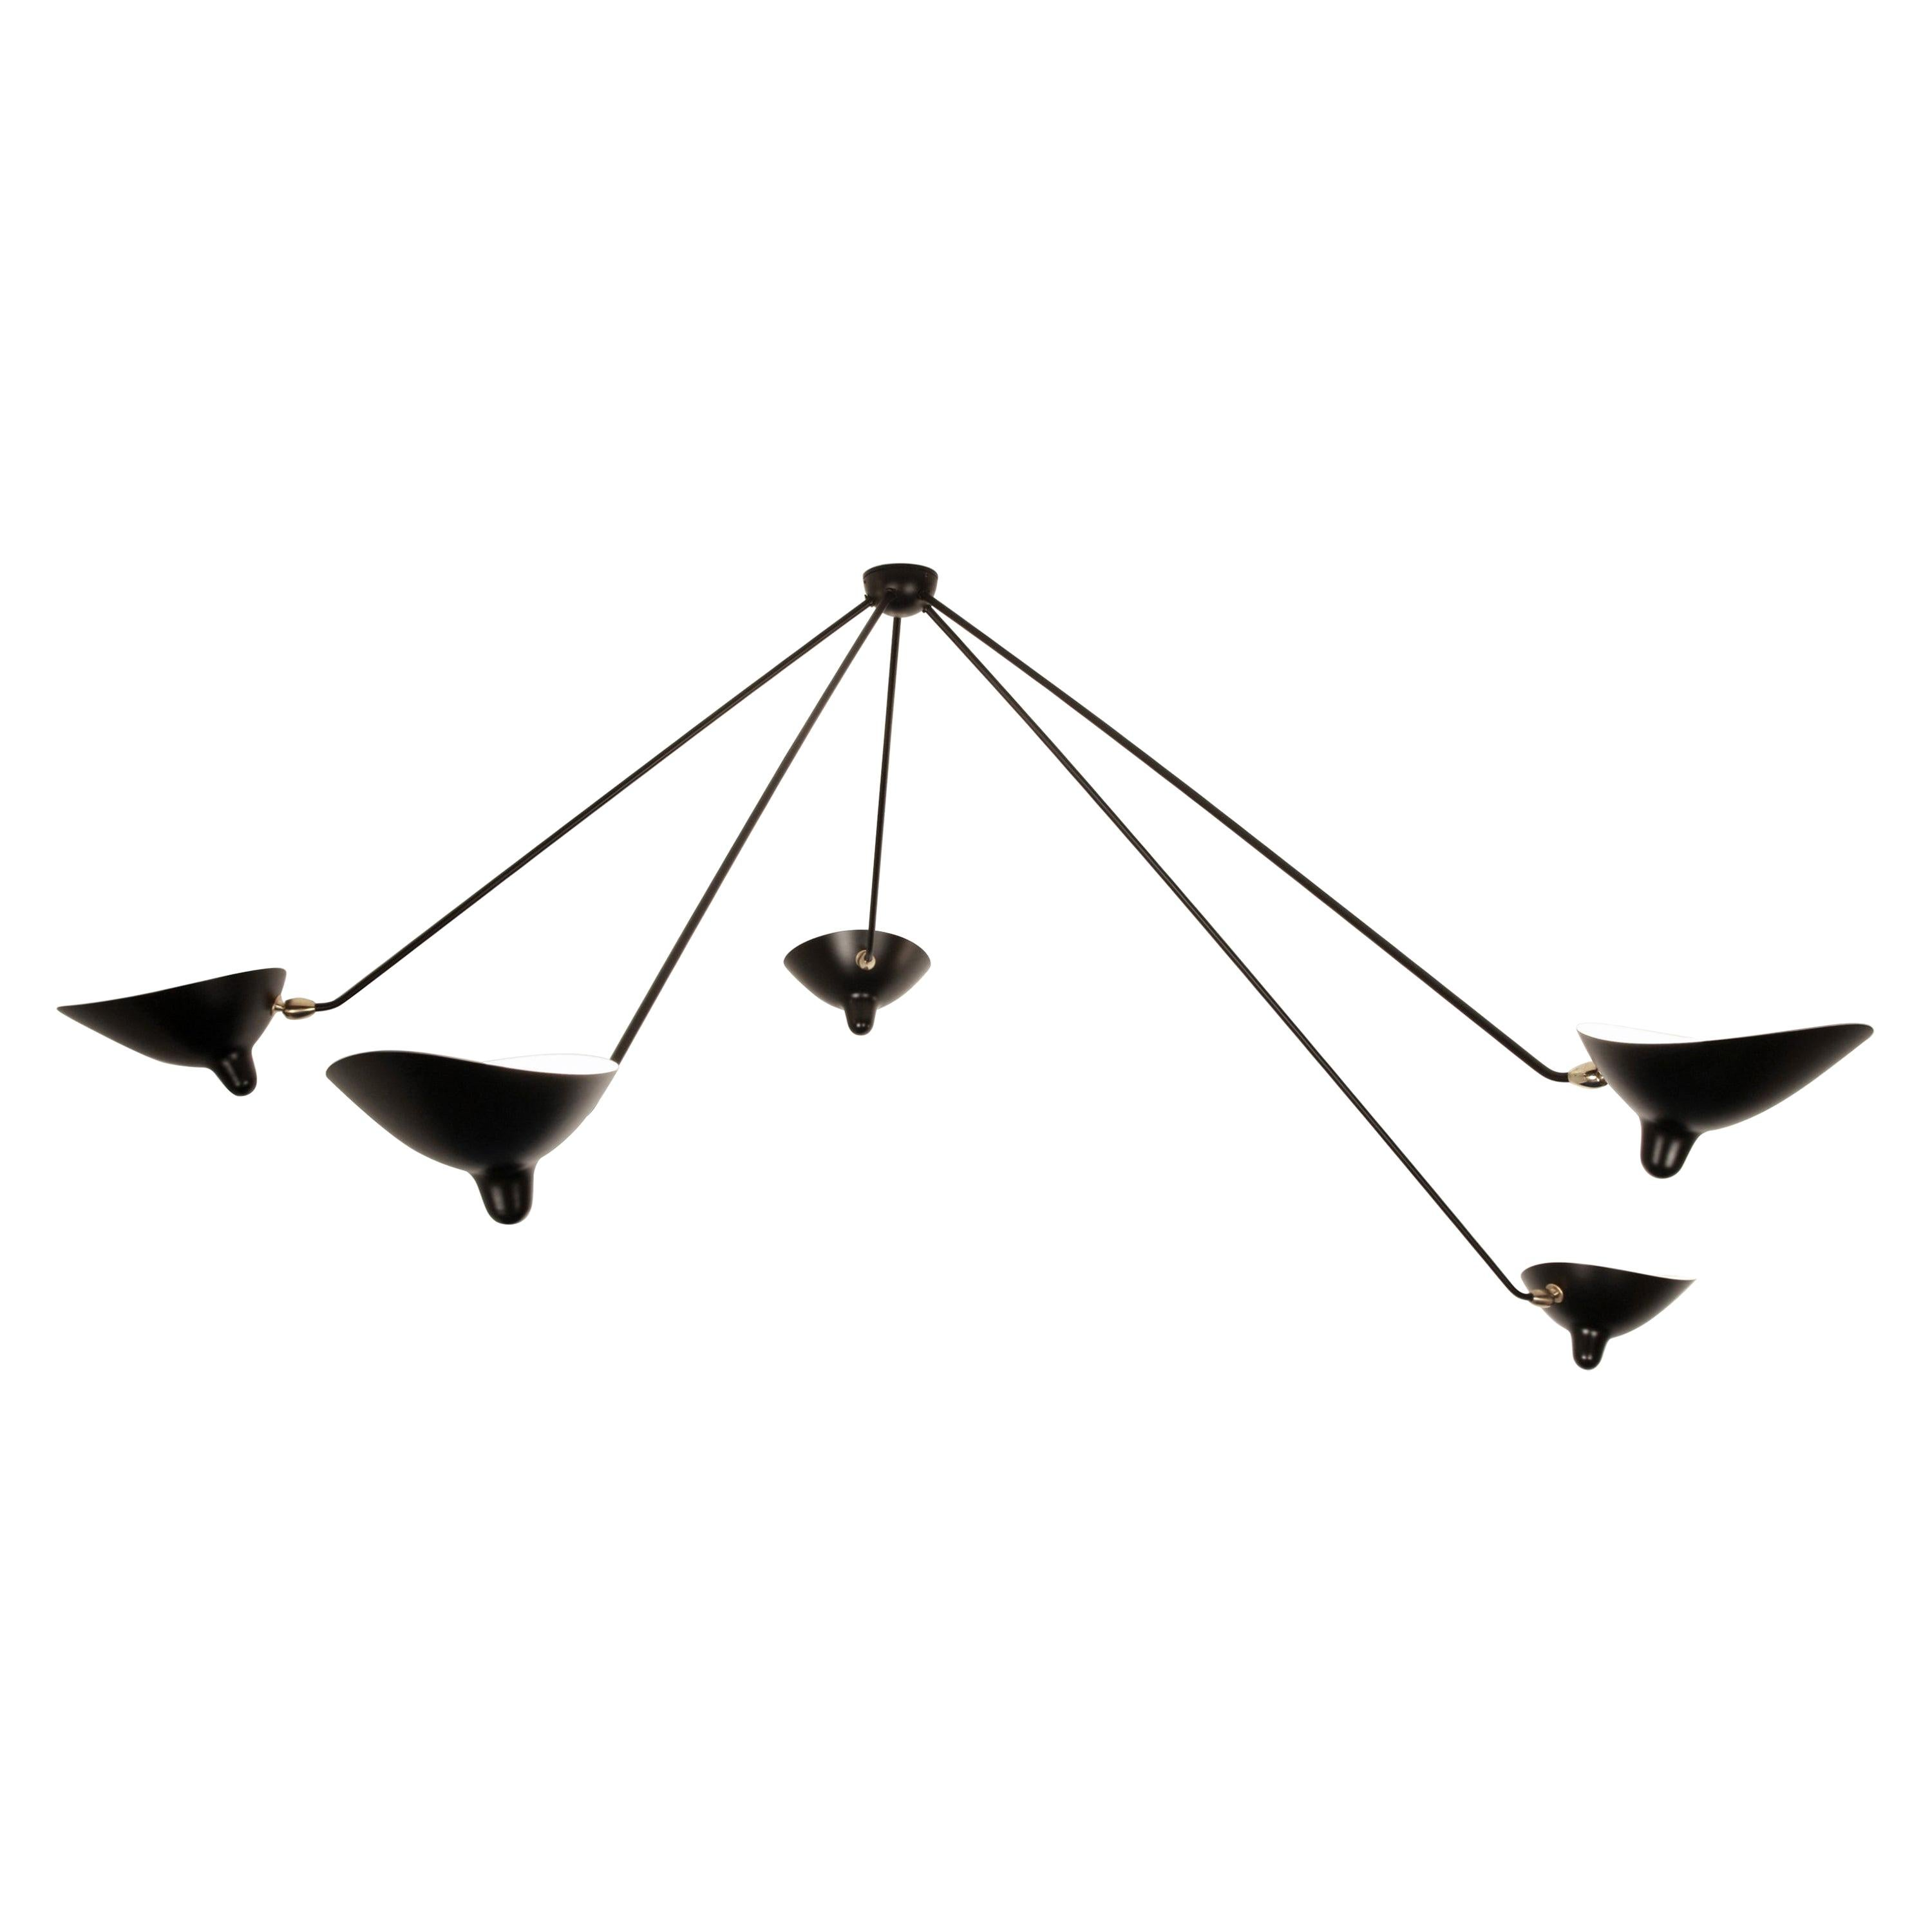 Serge Mouille Pendant Ceiling Spider Lamp with Five Fixed Arms